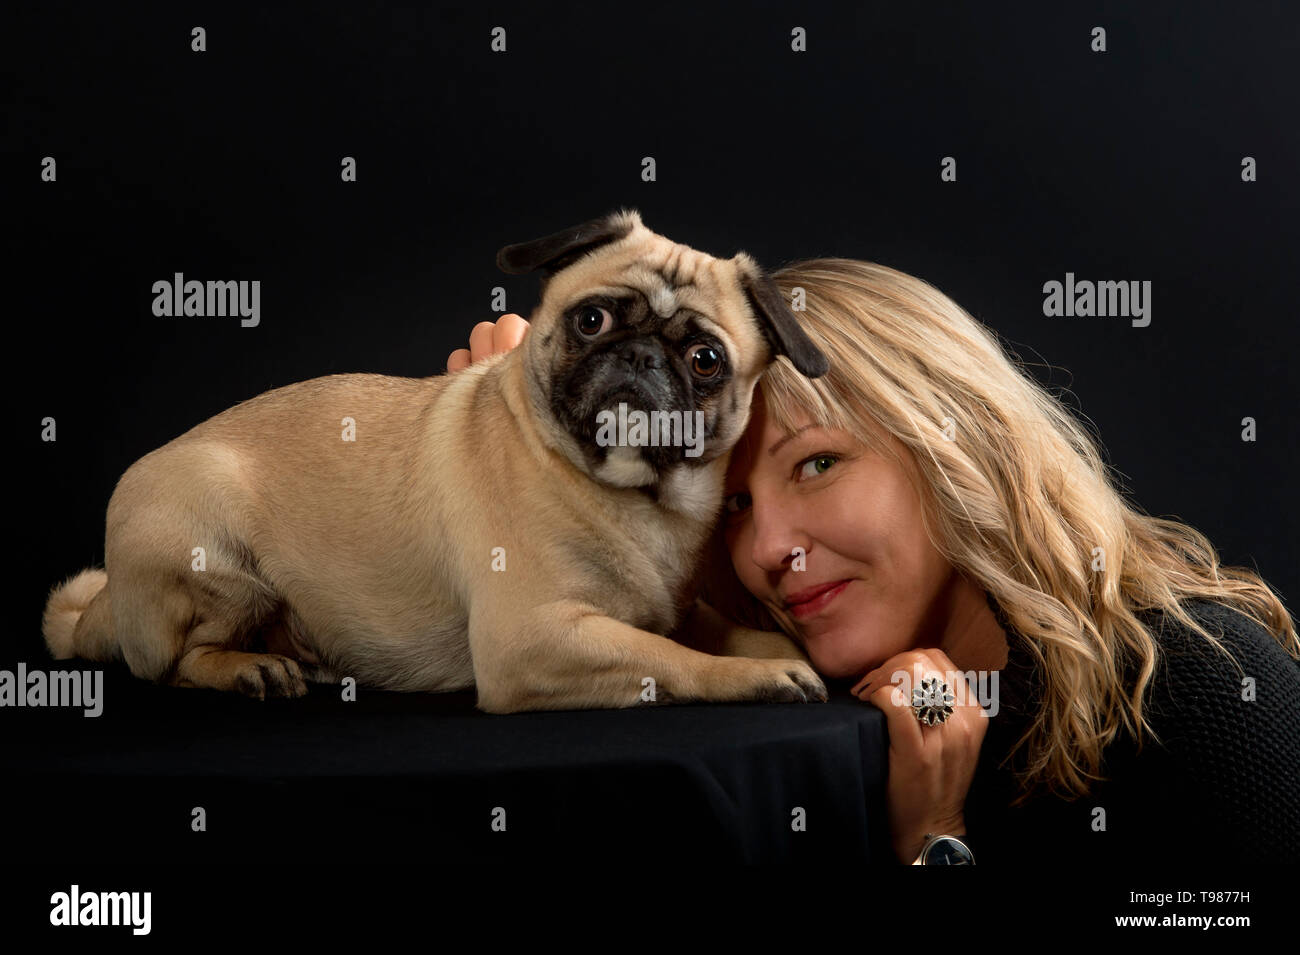 A woman with long blond hair cuddles with her dog (pug). In the studio, the blond hair shines beautifully in front of black background. - Stock Image